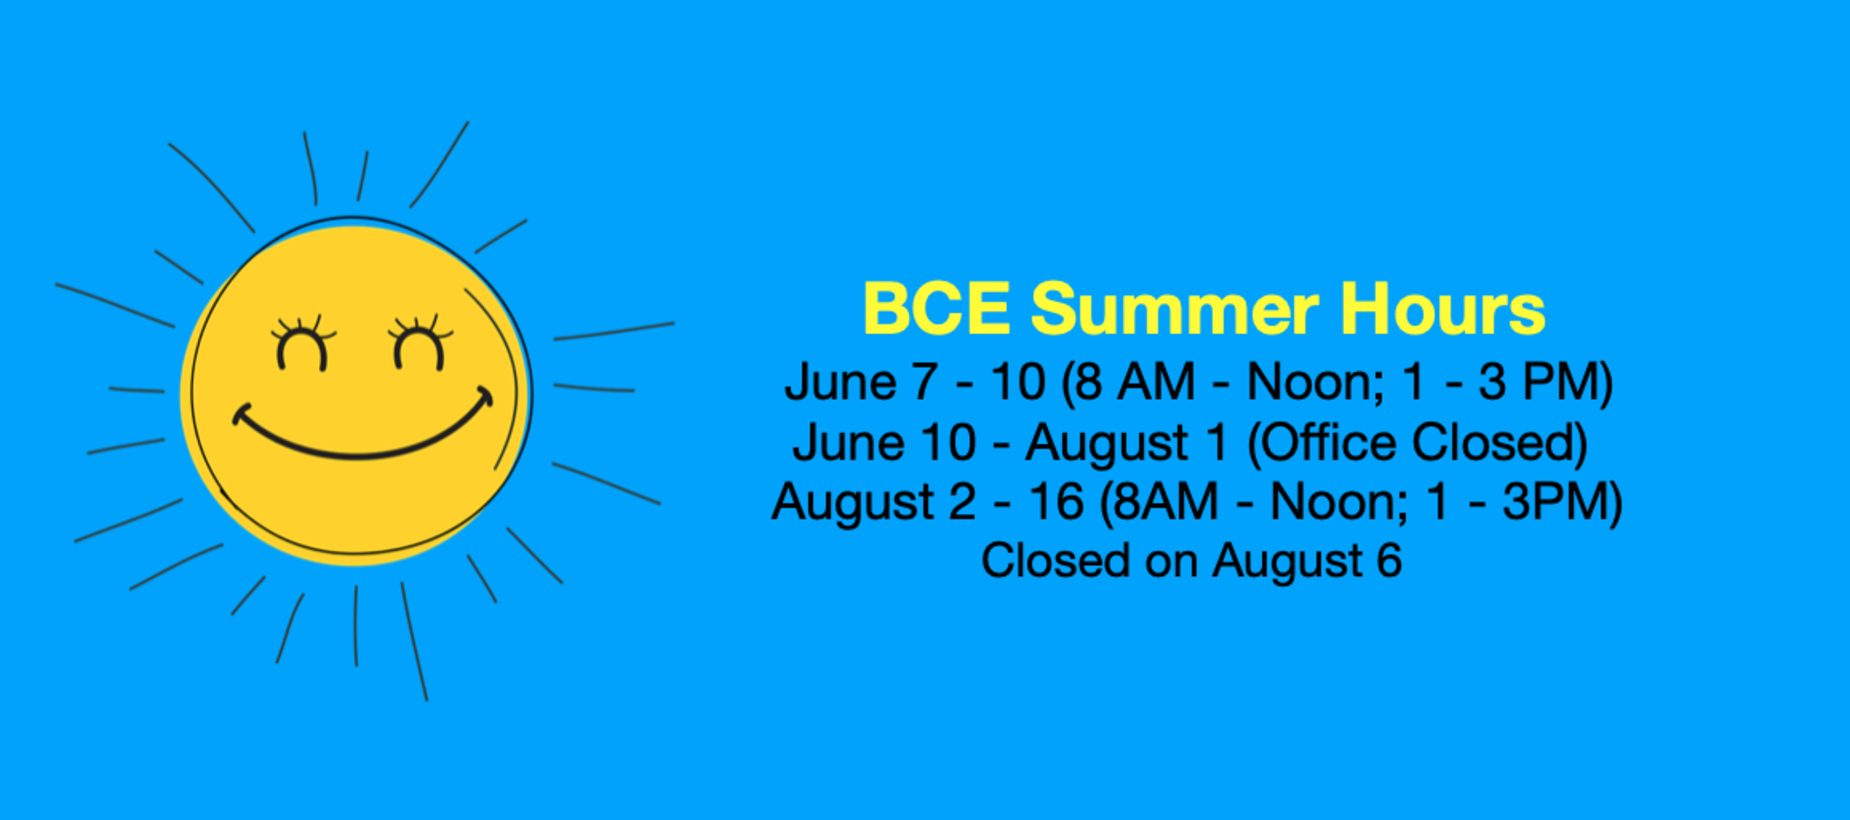 BCE Summer Hours 6/7-10 (8am - Noon; 1pm - 3pm) 6/10 - 8-1 (Office closed for summer) 8/2-16 (8 am - Noon; 1 pm - 3 pm) Closed on August 6.